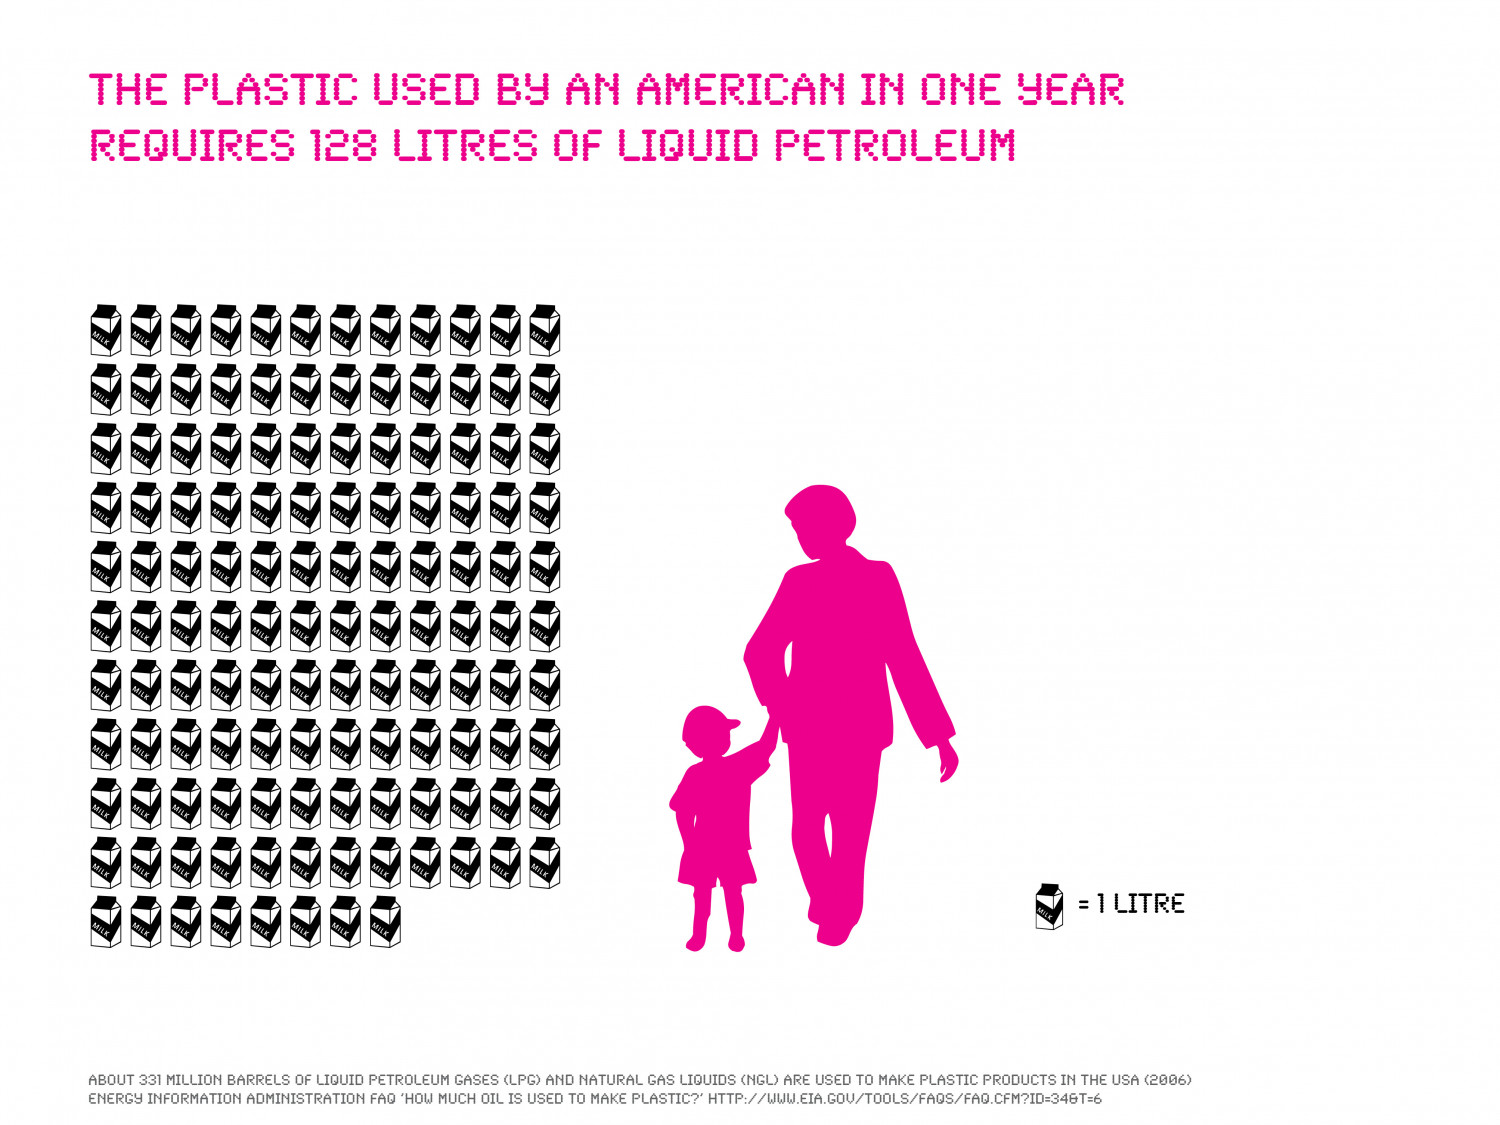 Petrol for Plastic: The Volume of Liquid Petrol Gas used to Make a Year